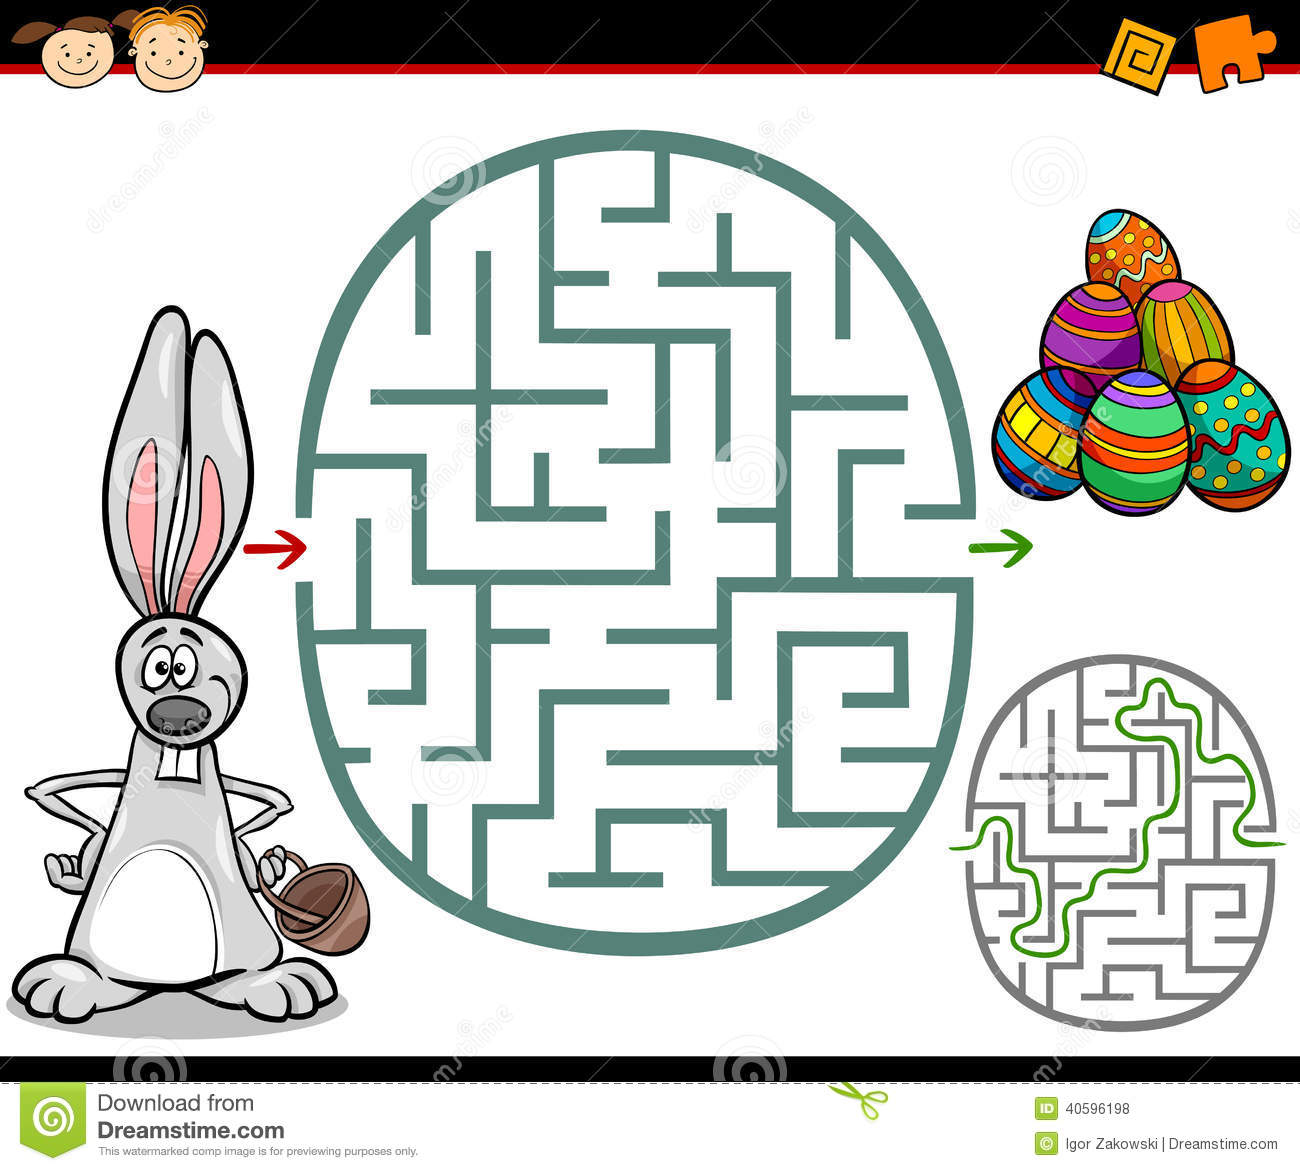 ... Maze or Labyrinth Game for Preschool Children with Easter Themes